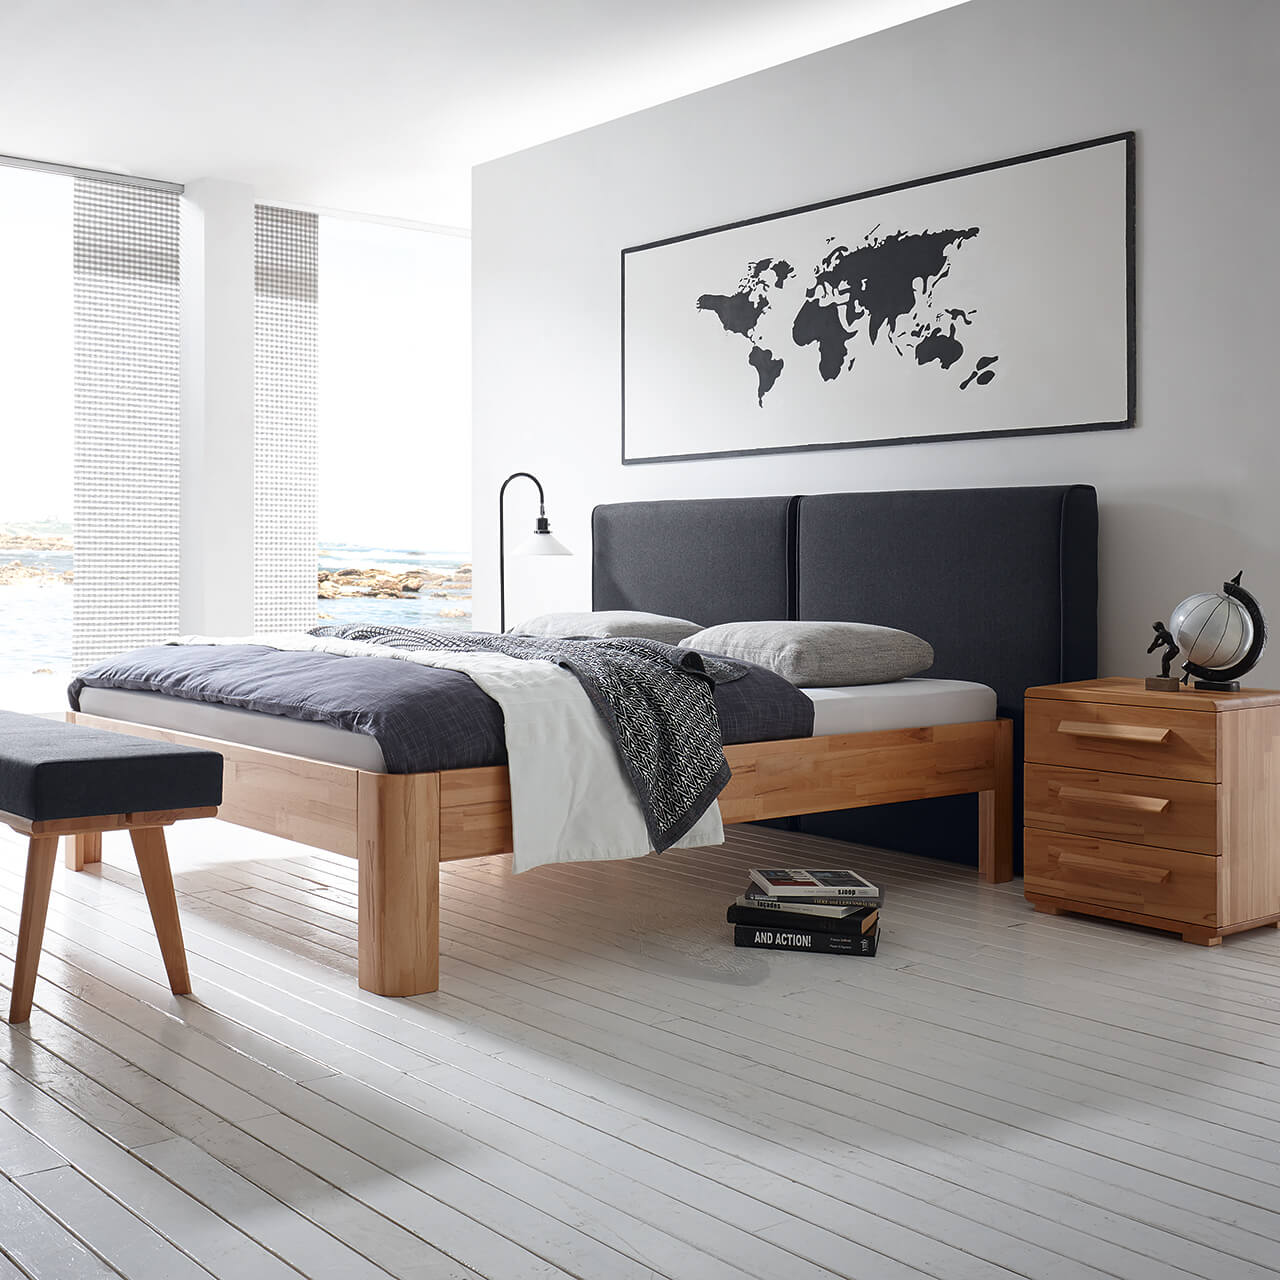 bettrahmen fine line syma auch f r suma wasserbetten. Black Bedroom Furniture Sets. Home Design Ideas